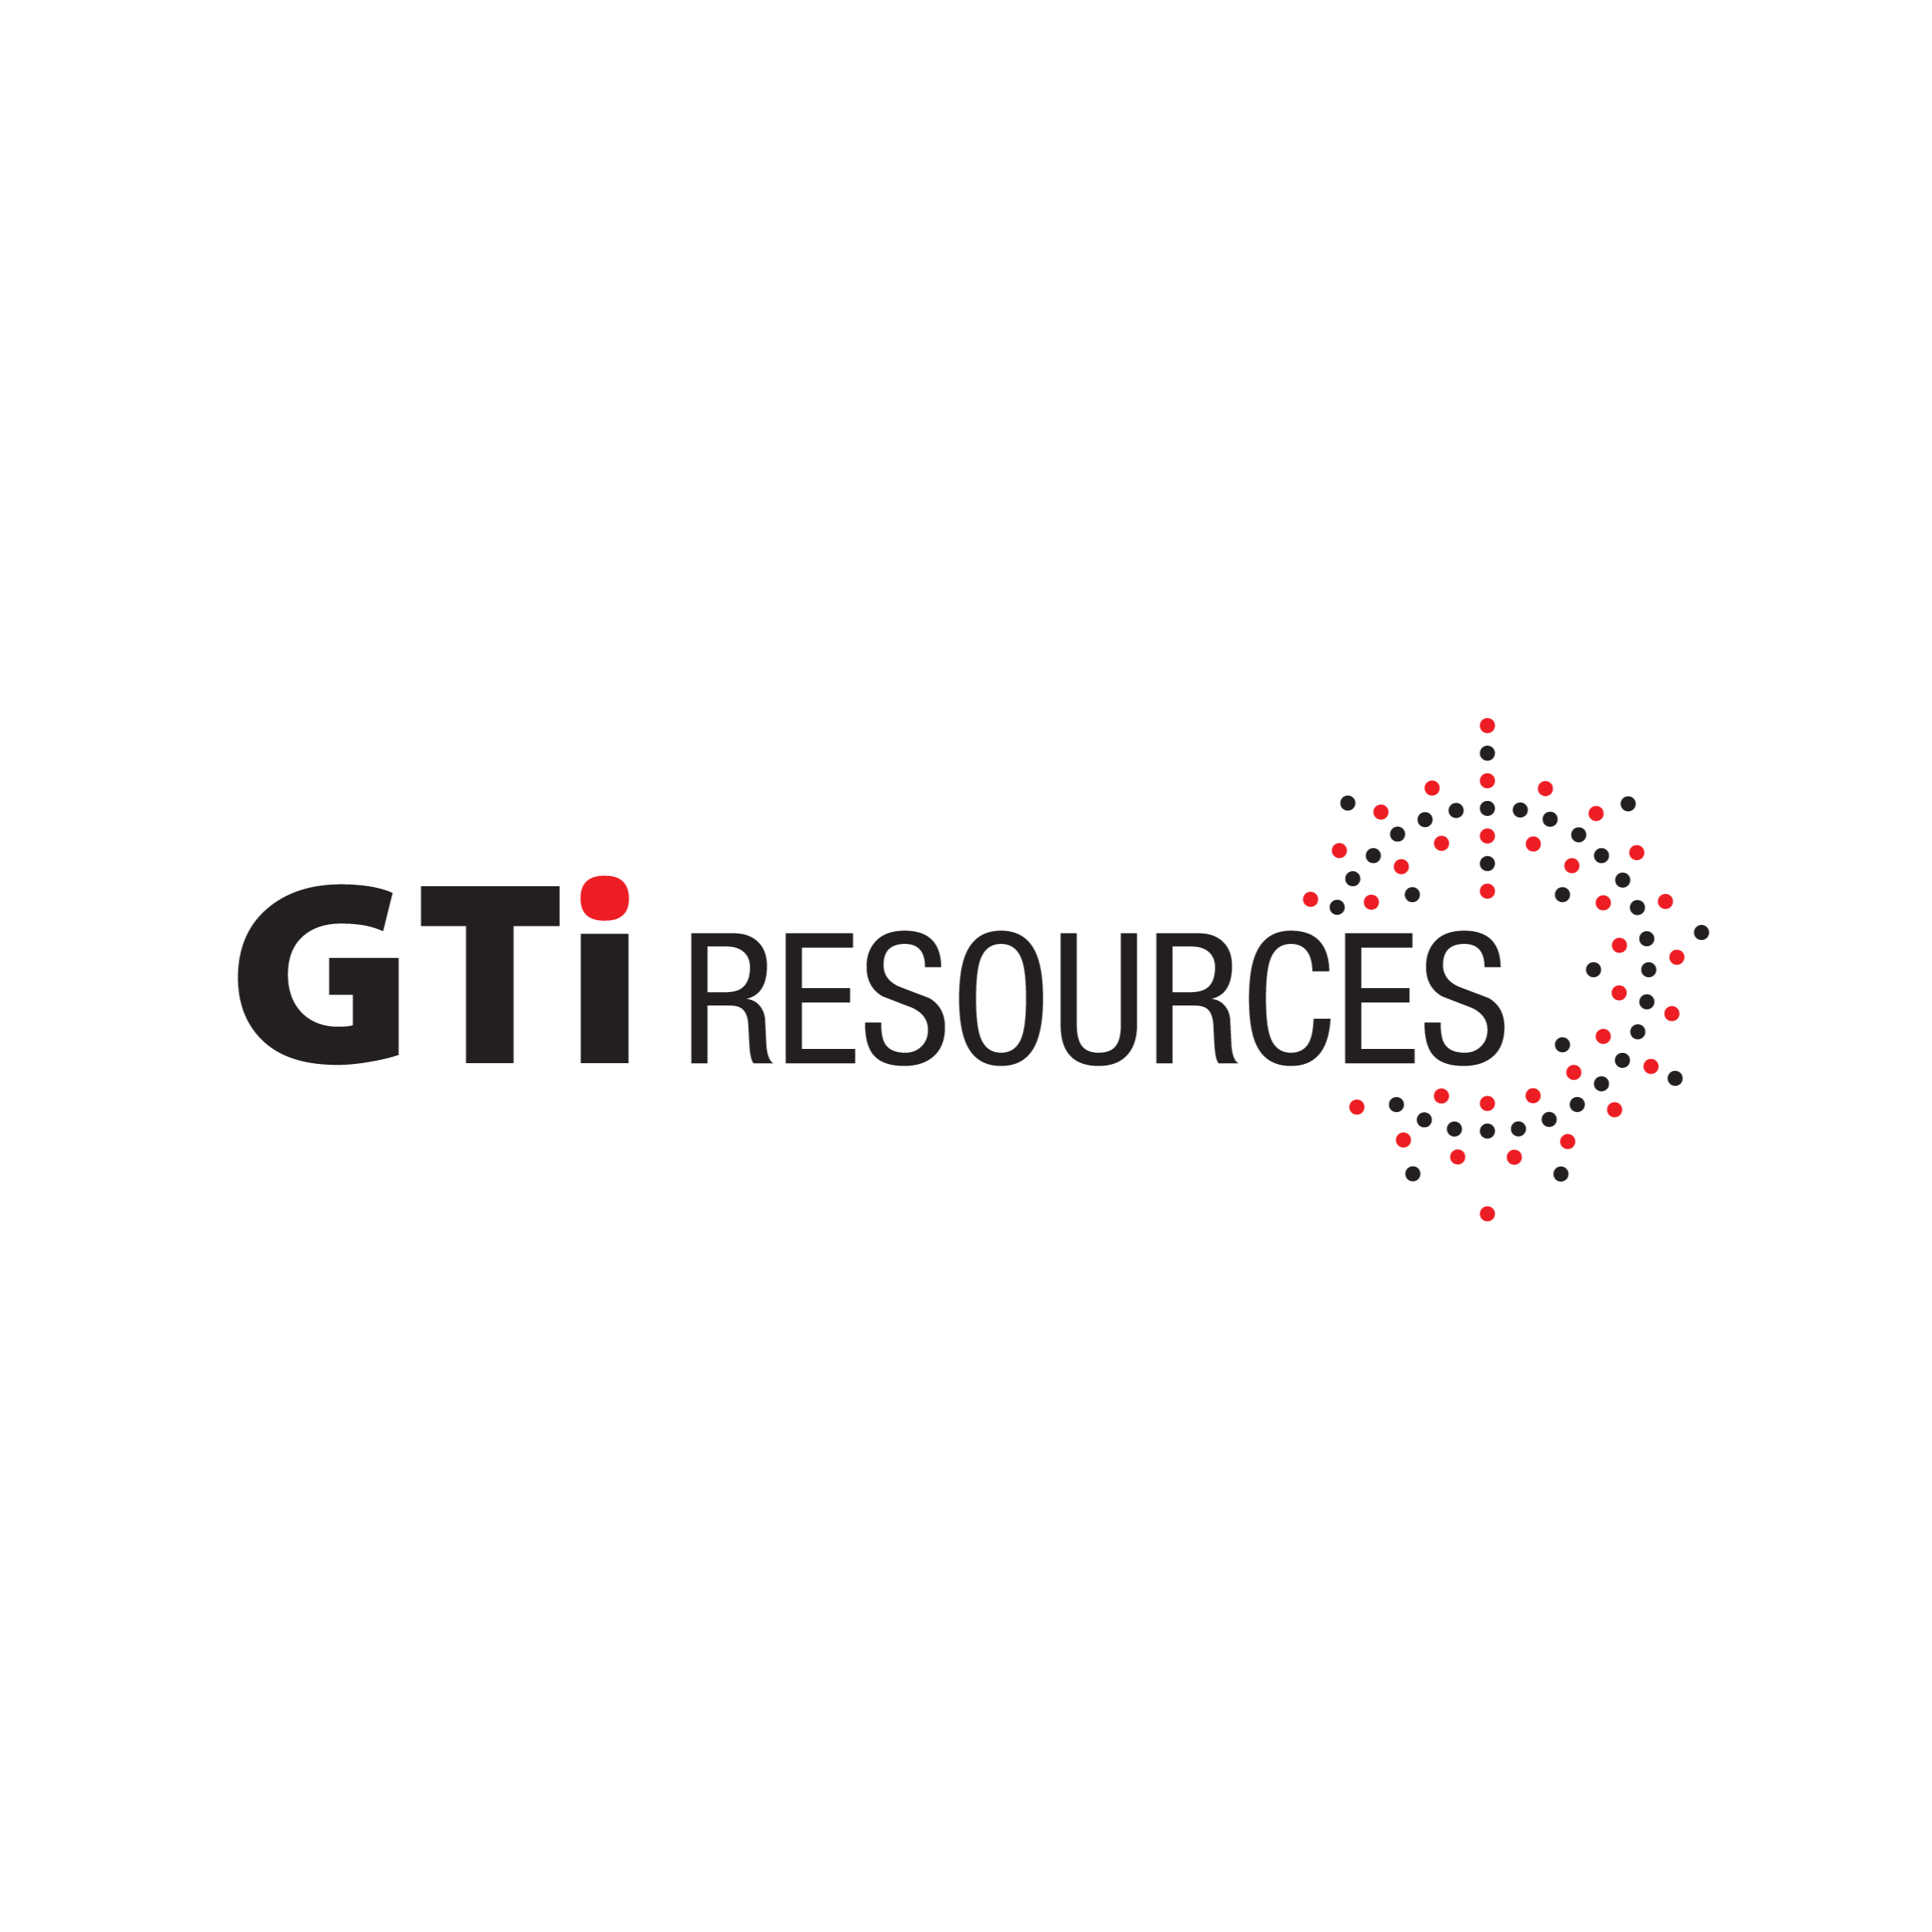 GTI Resources Limited